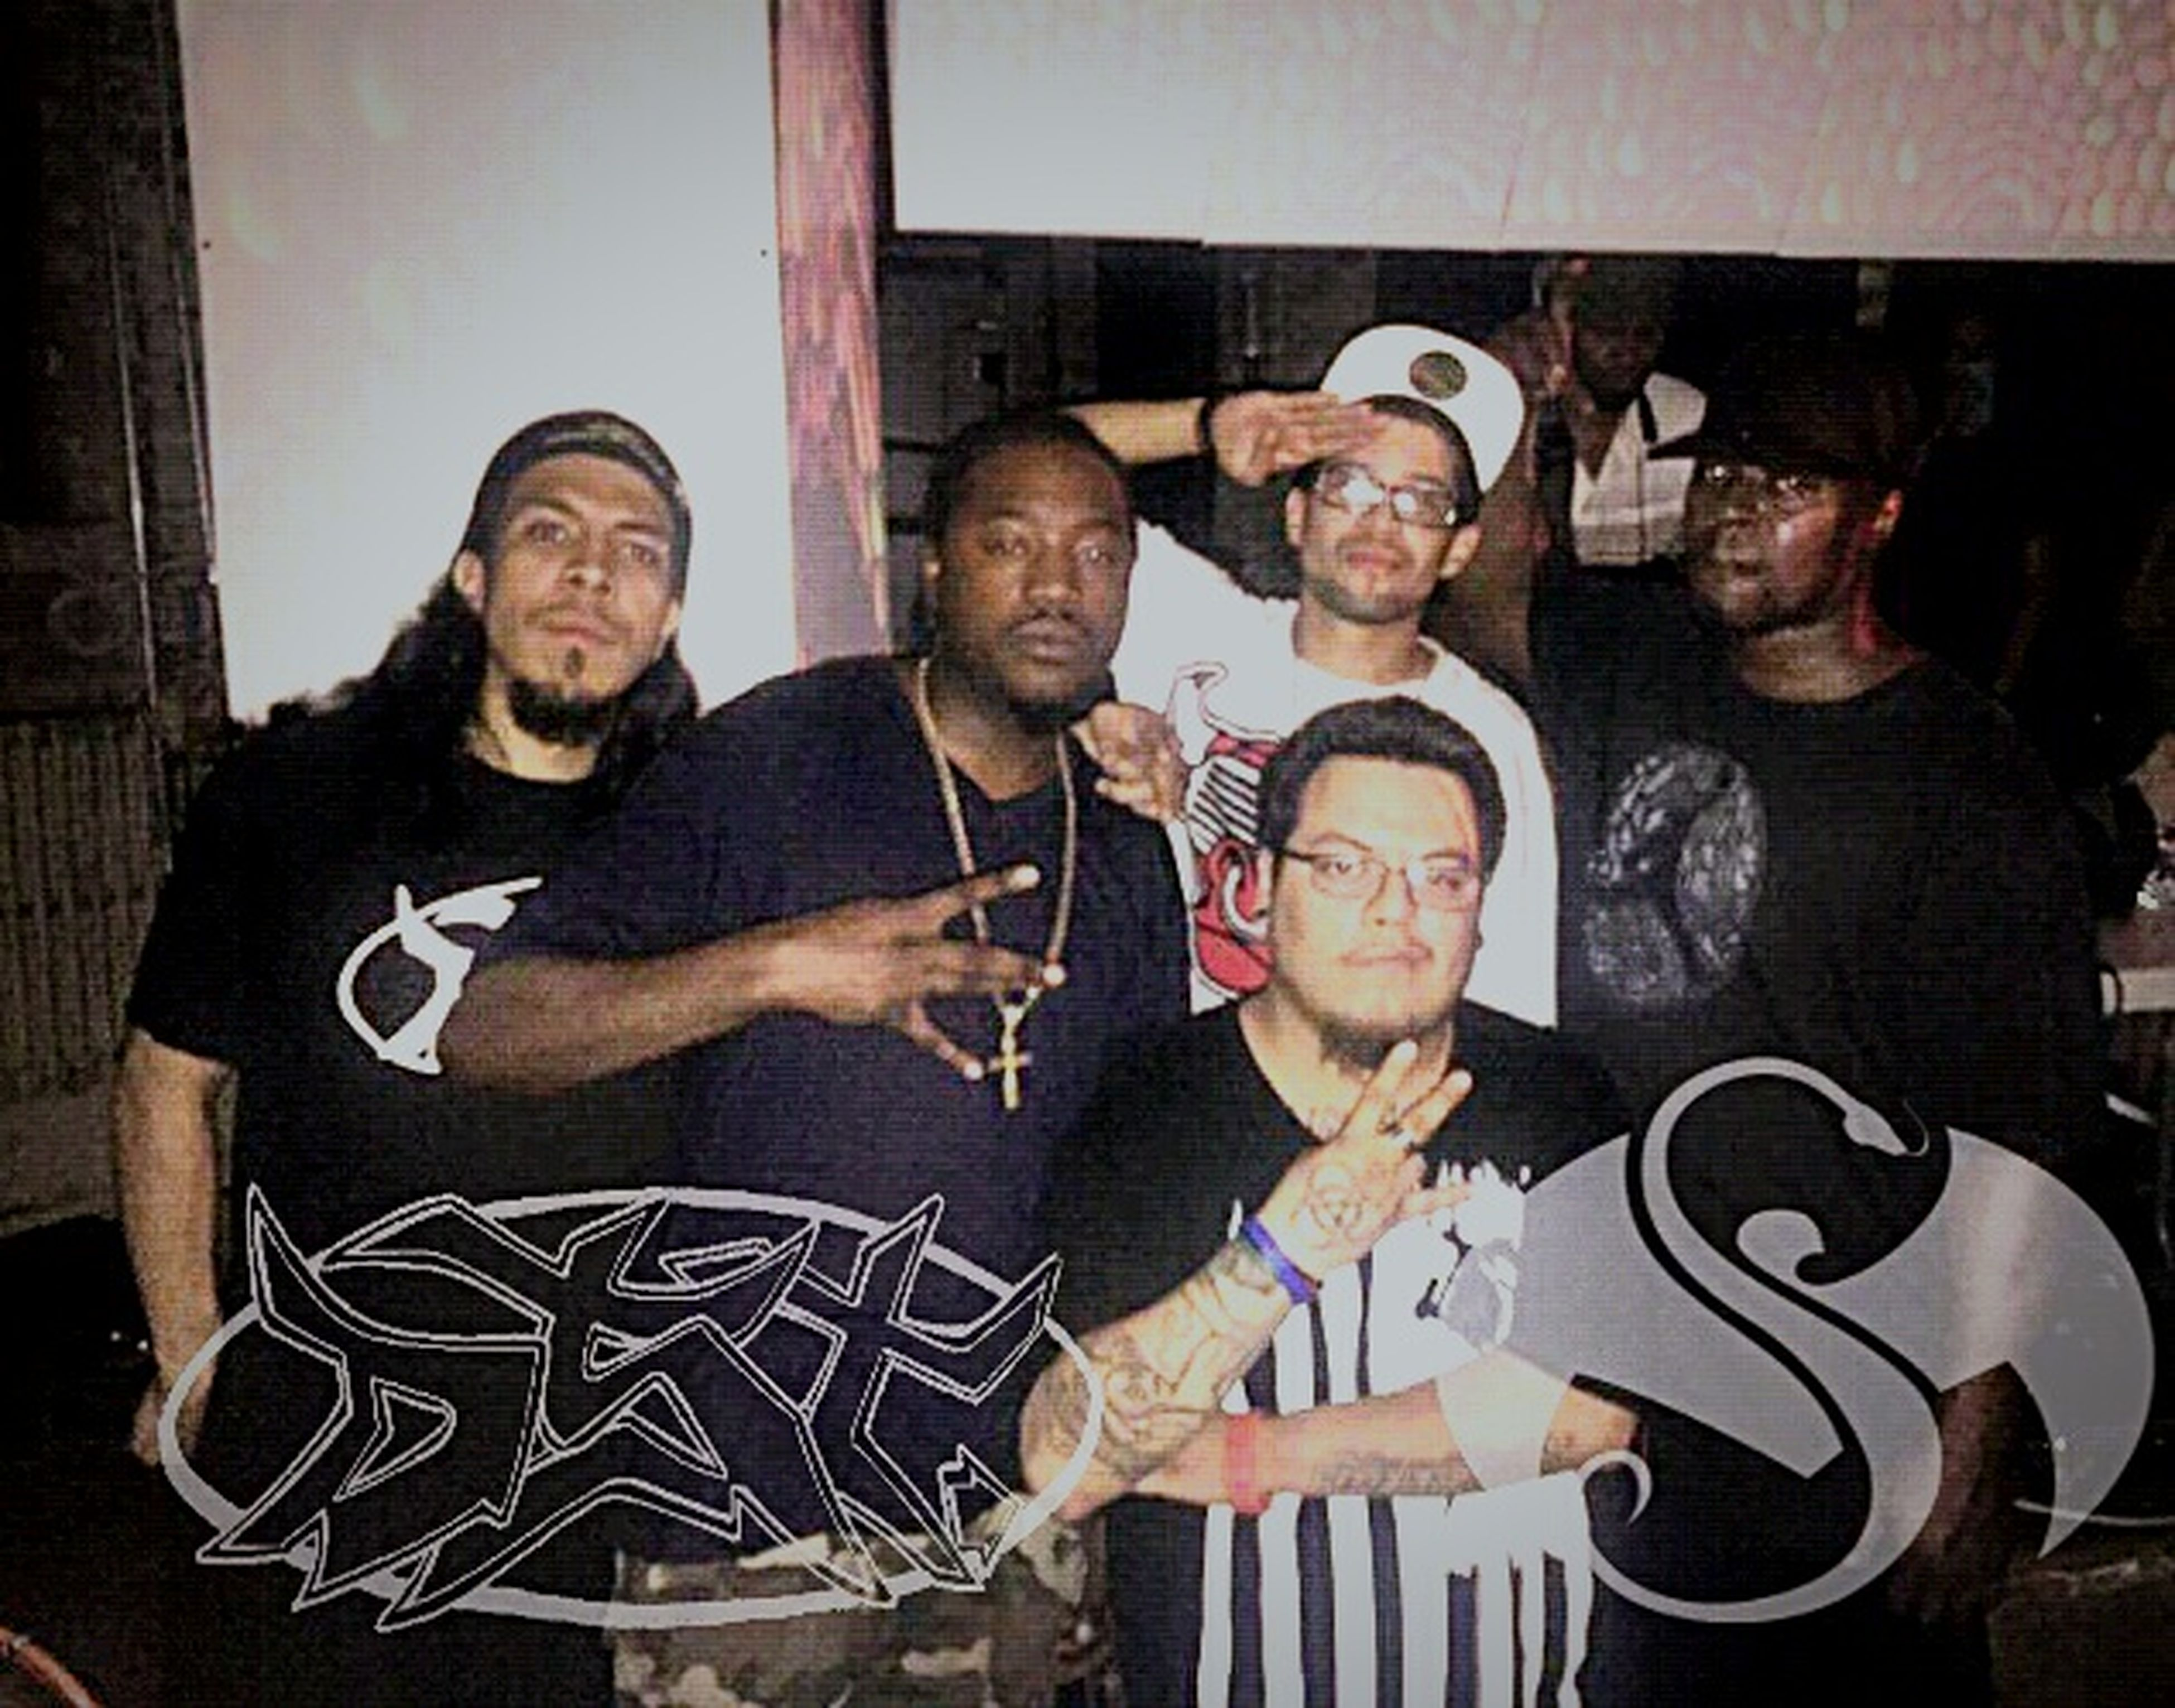 Rockin out When The Sun Goes Down!!! Made a DOPE impression with all the new faces, and some old ones surfin the vibe with us! Also had the pleasure to tear the stage up with Strange Music Inc. artist LEBOWSKI!!! Definatly a night to remember! DSTRecordz Lebowski StrangeMusic HappyBirthdayKonsept First Eyeem Photo